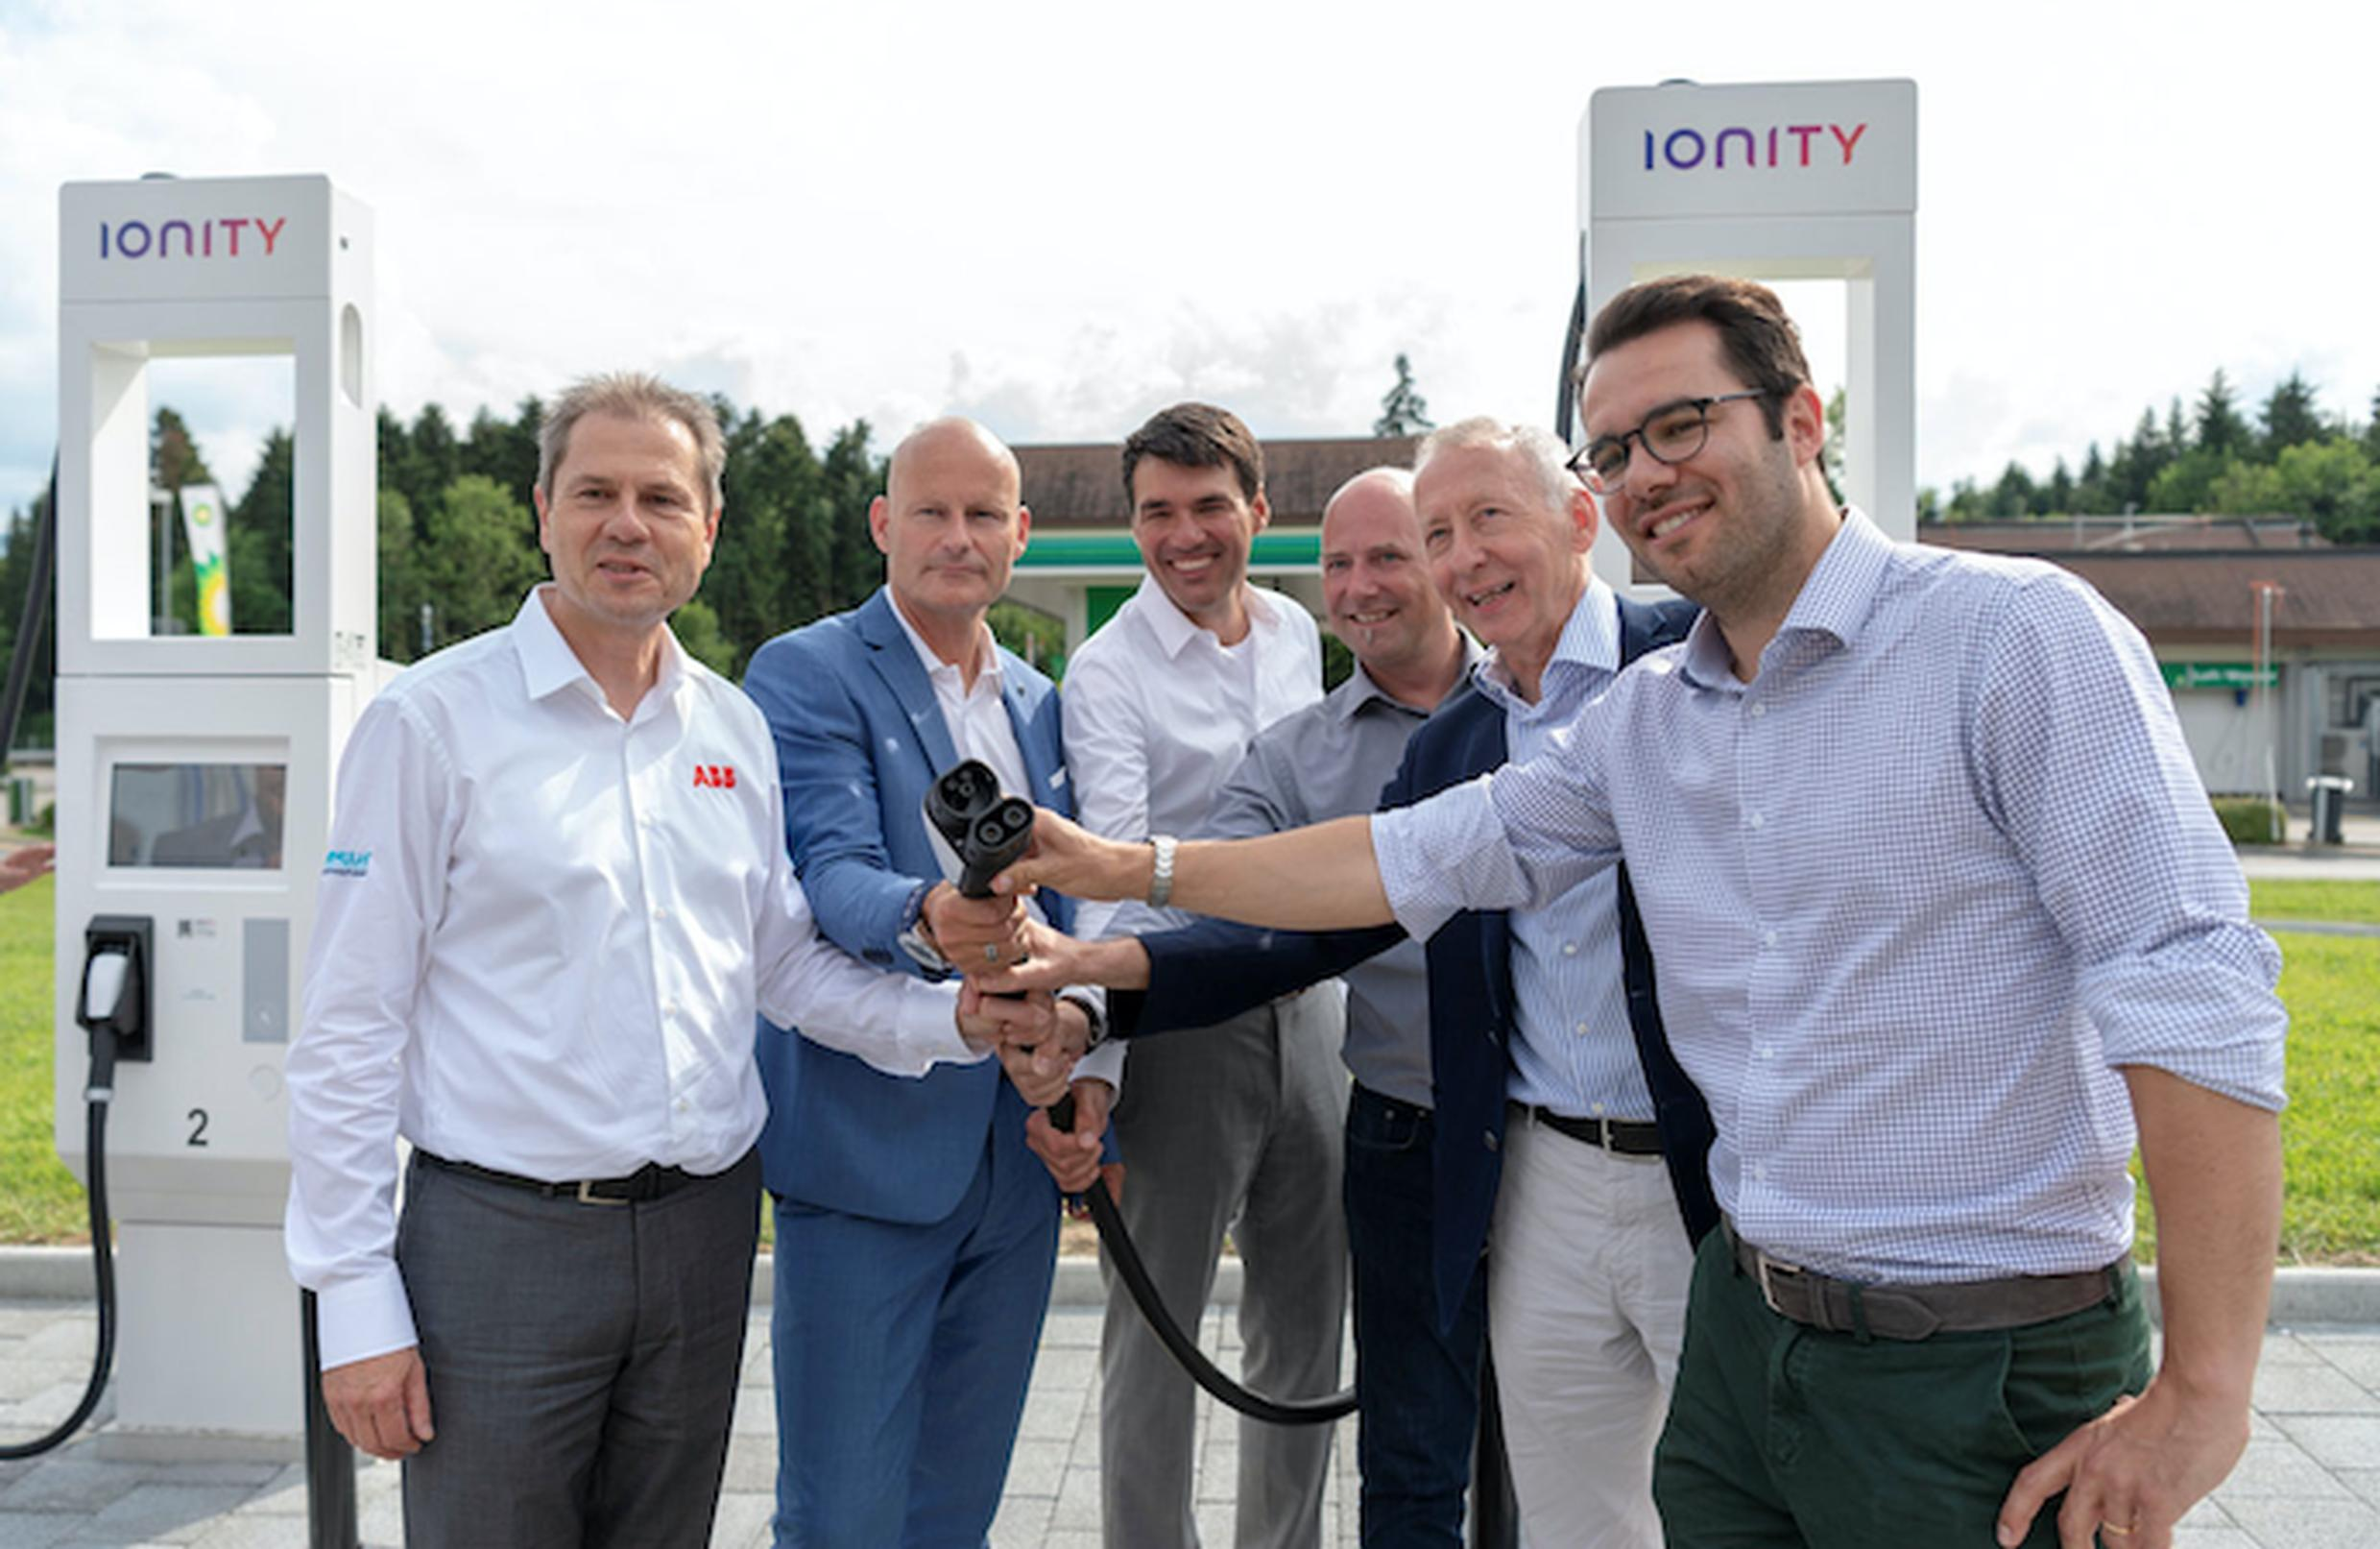 IONITY network opens first EV service station in Switzerland